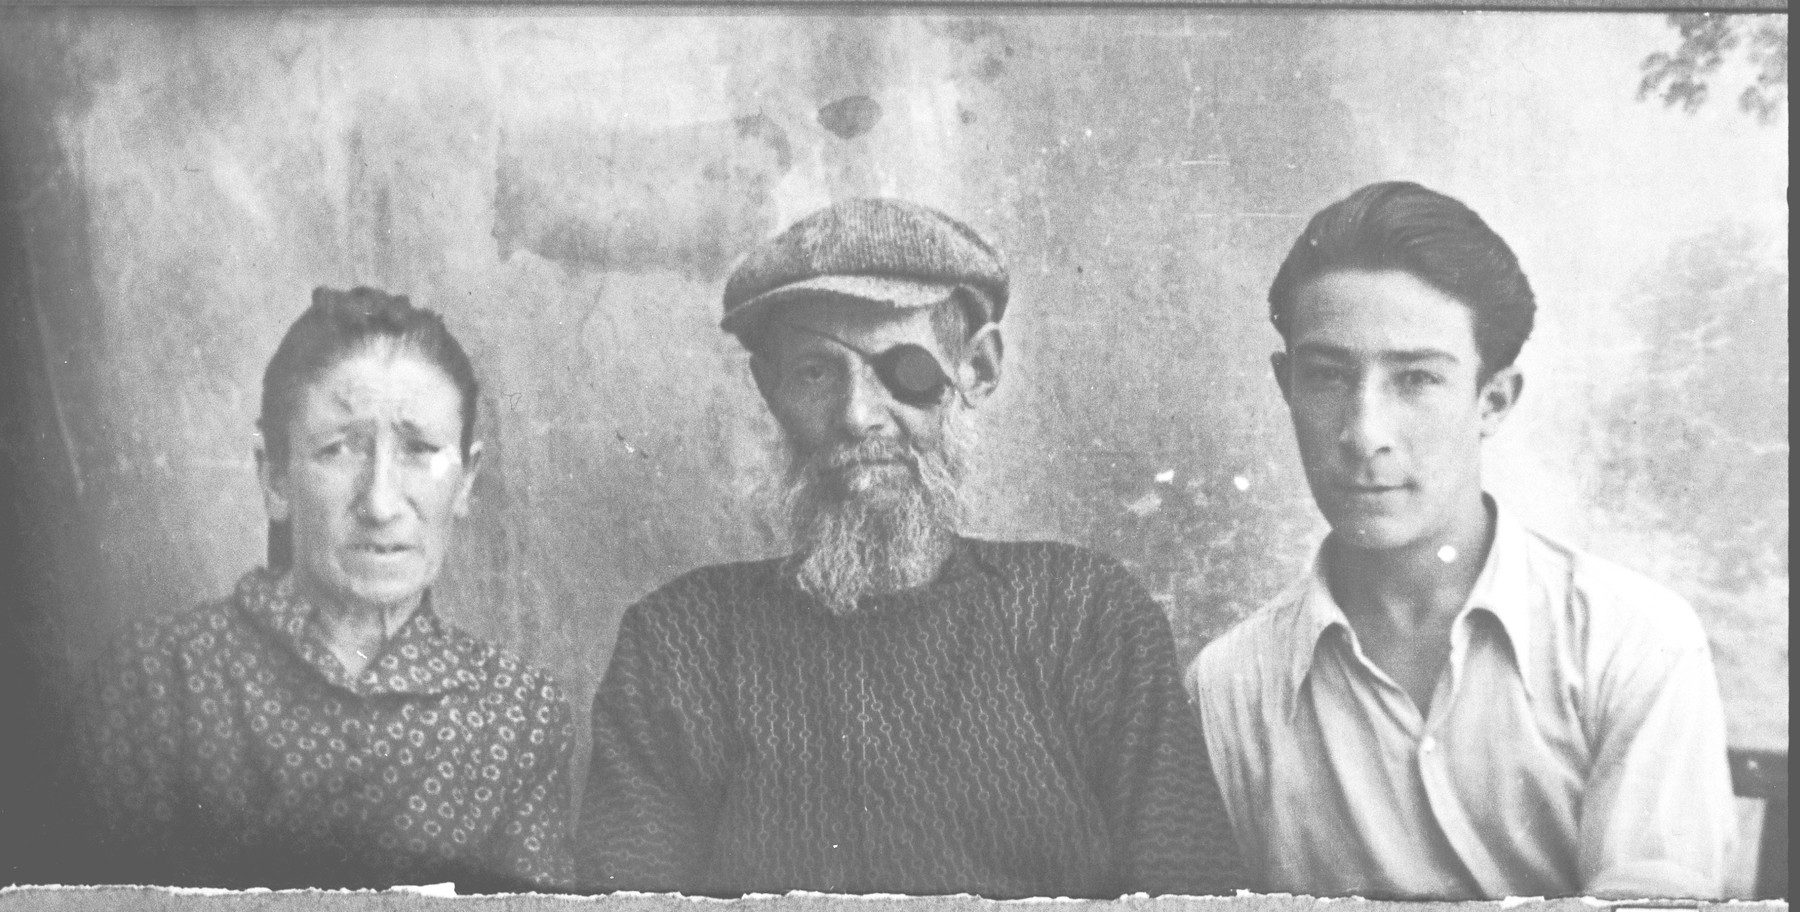 Portrait of Kutuel Kamchi, his wife, Djoya, and his son, Avram.  Kutuel was a lumber dealer and Avram, a laborer.  They lived at Orisarska 4 in Bitola.